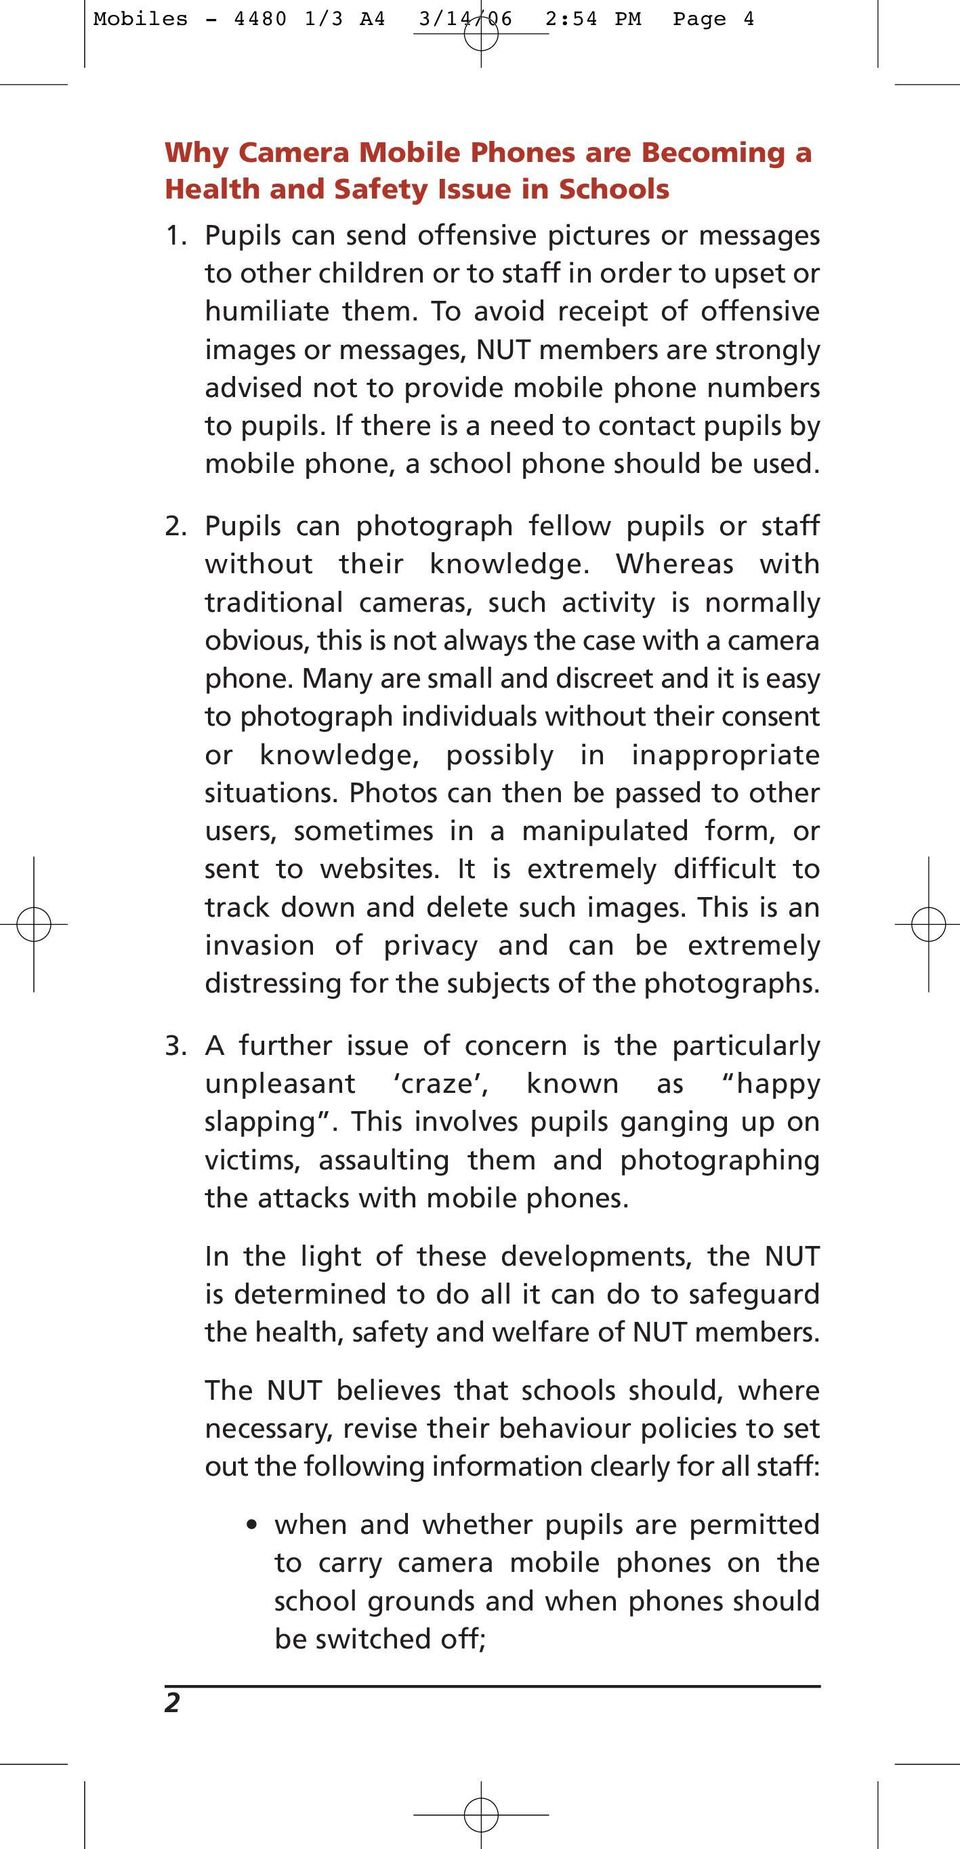 To avoid receipt of offensive images or messages, NUT members are strongly advised not to provide mobile phone numbers to pupils.